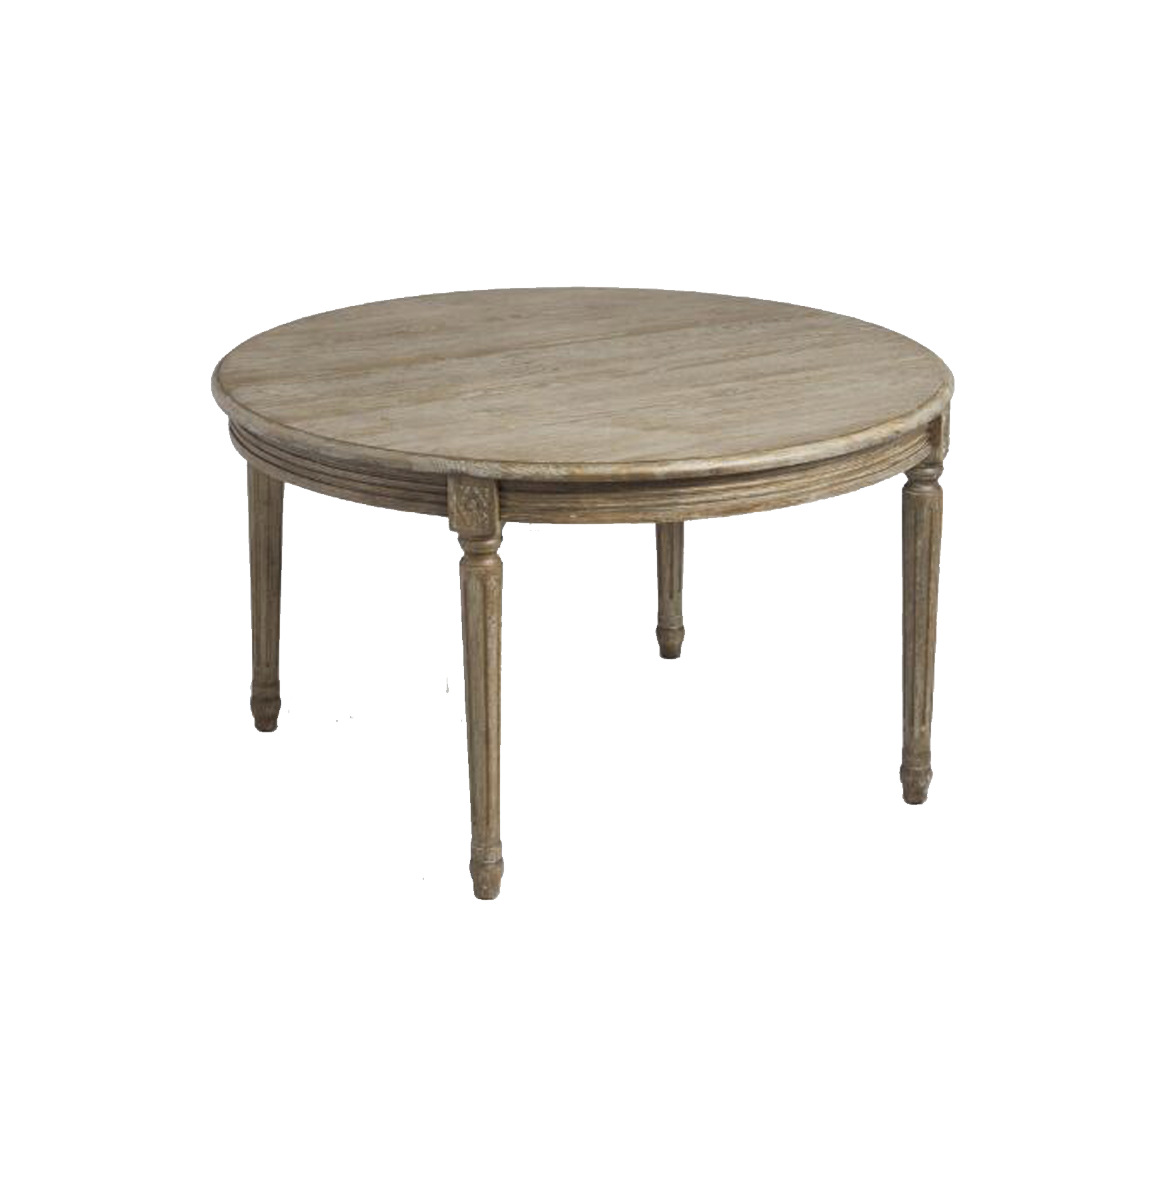 Paige Cake Table $100